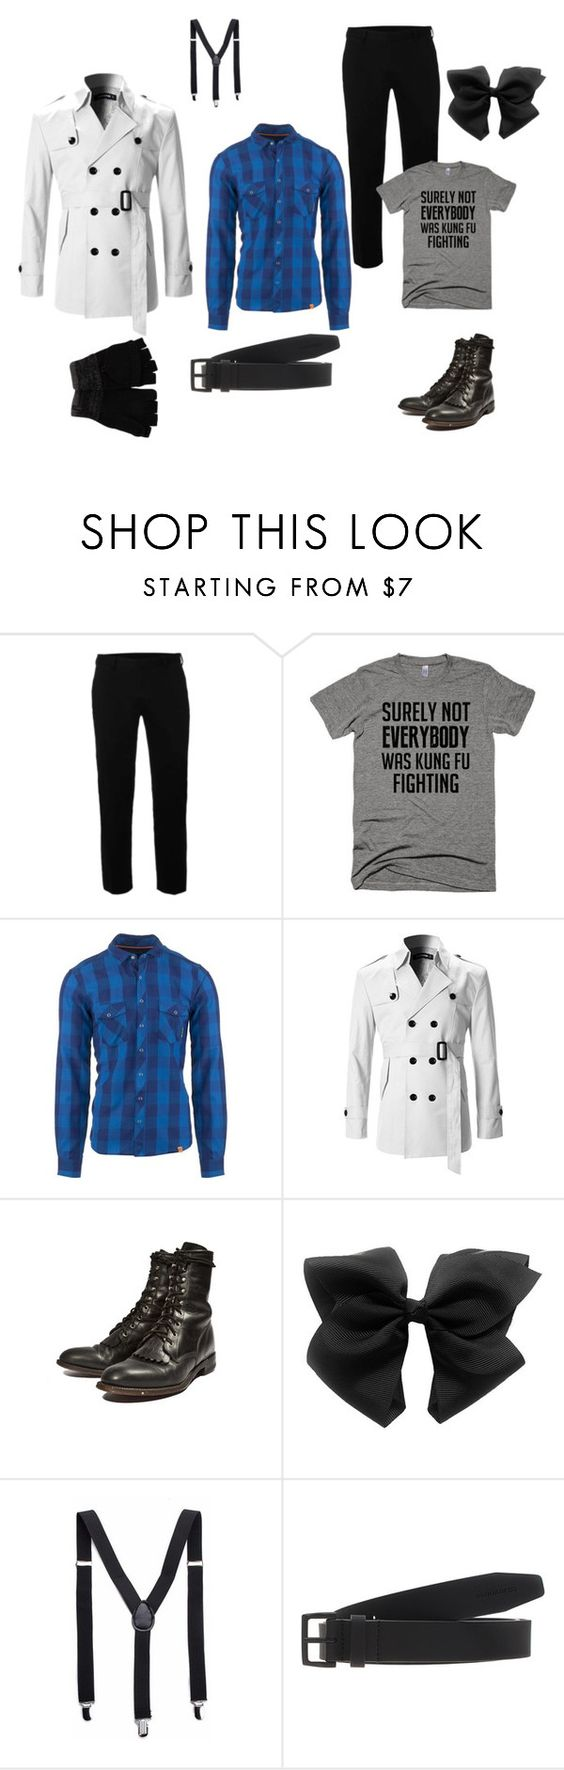 """""""outfit meme3"""" by truepacifrisk ❤ liked on Polyvore featuring Topman, Ortovox, Dsquared2, A. Kurtz, men's fashion and menswear"""